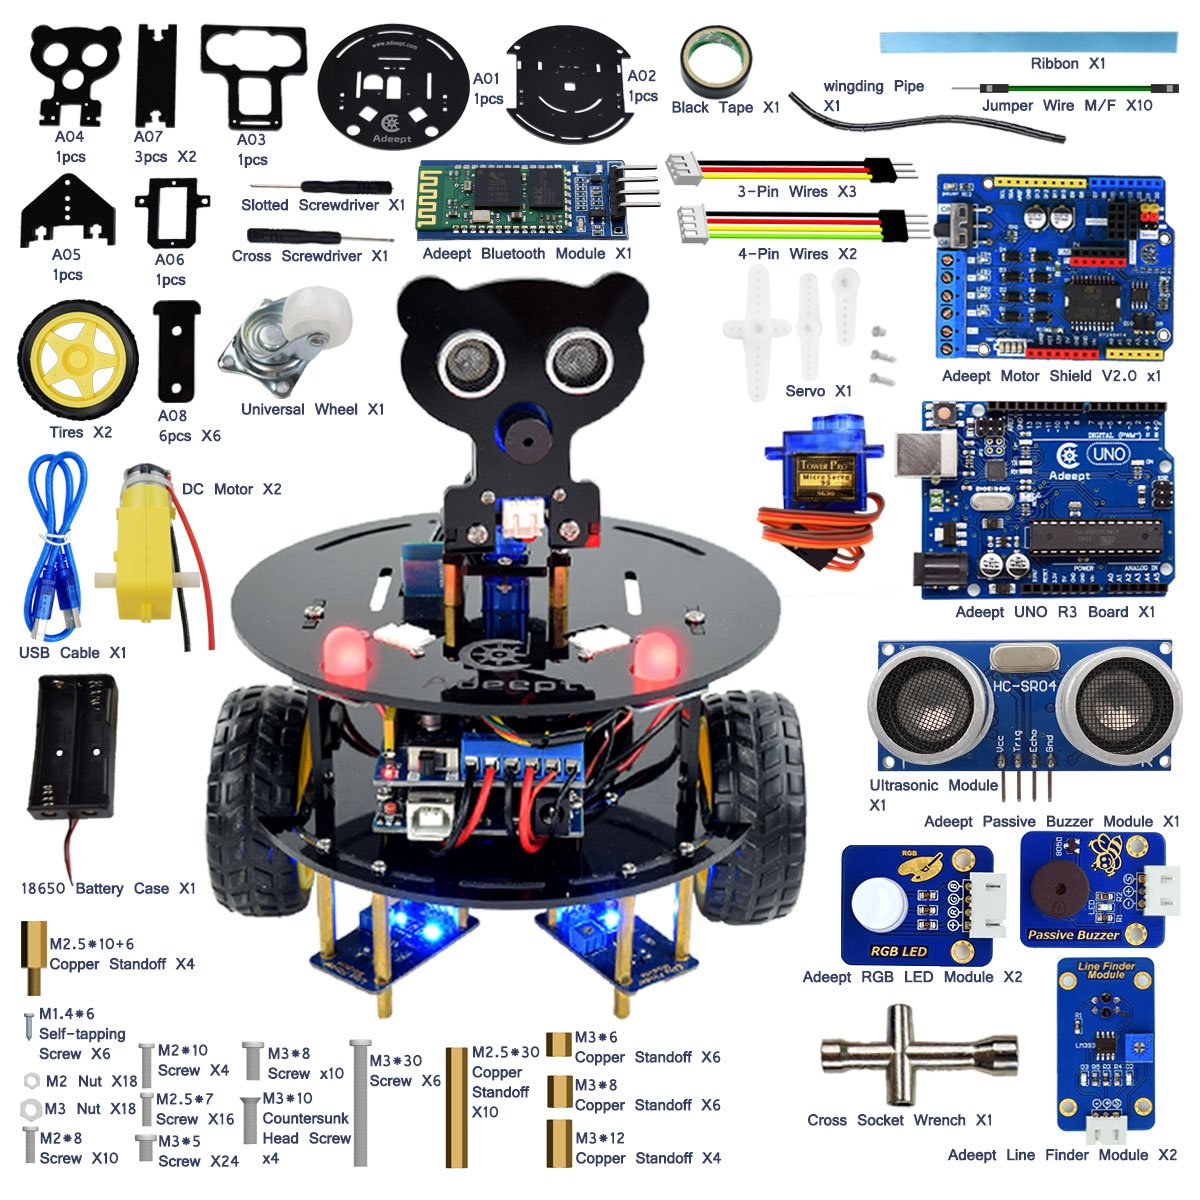 Adeept 3wd Bluetooth Smart Robot Car Kit For Arduino Uno Remote Controlled Toy Circuit With Transceiver Module R3 Wireless Control Starter Robotics Model